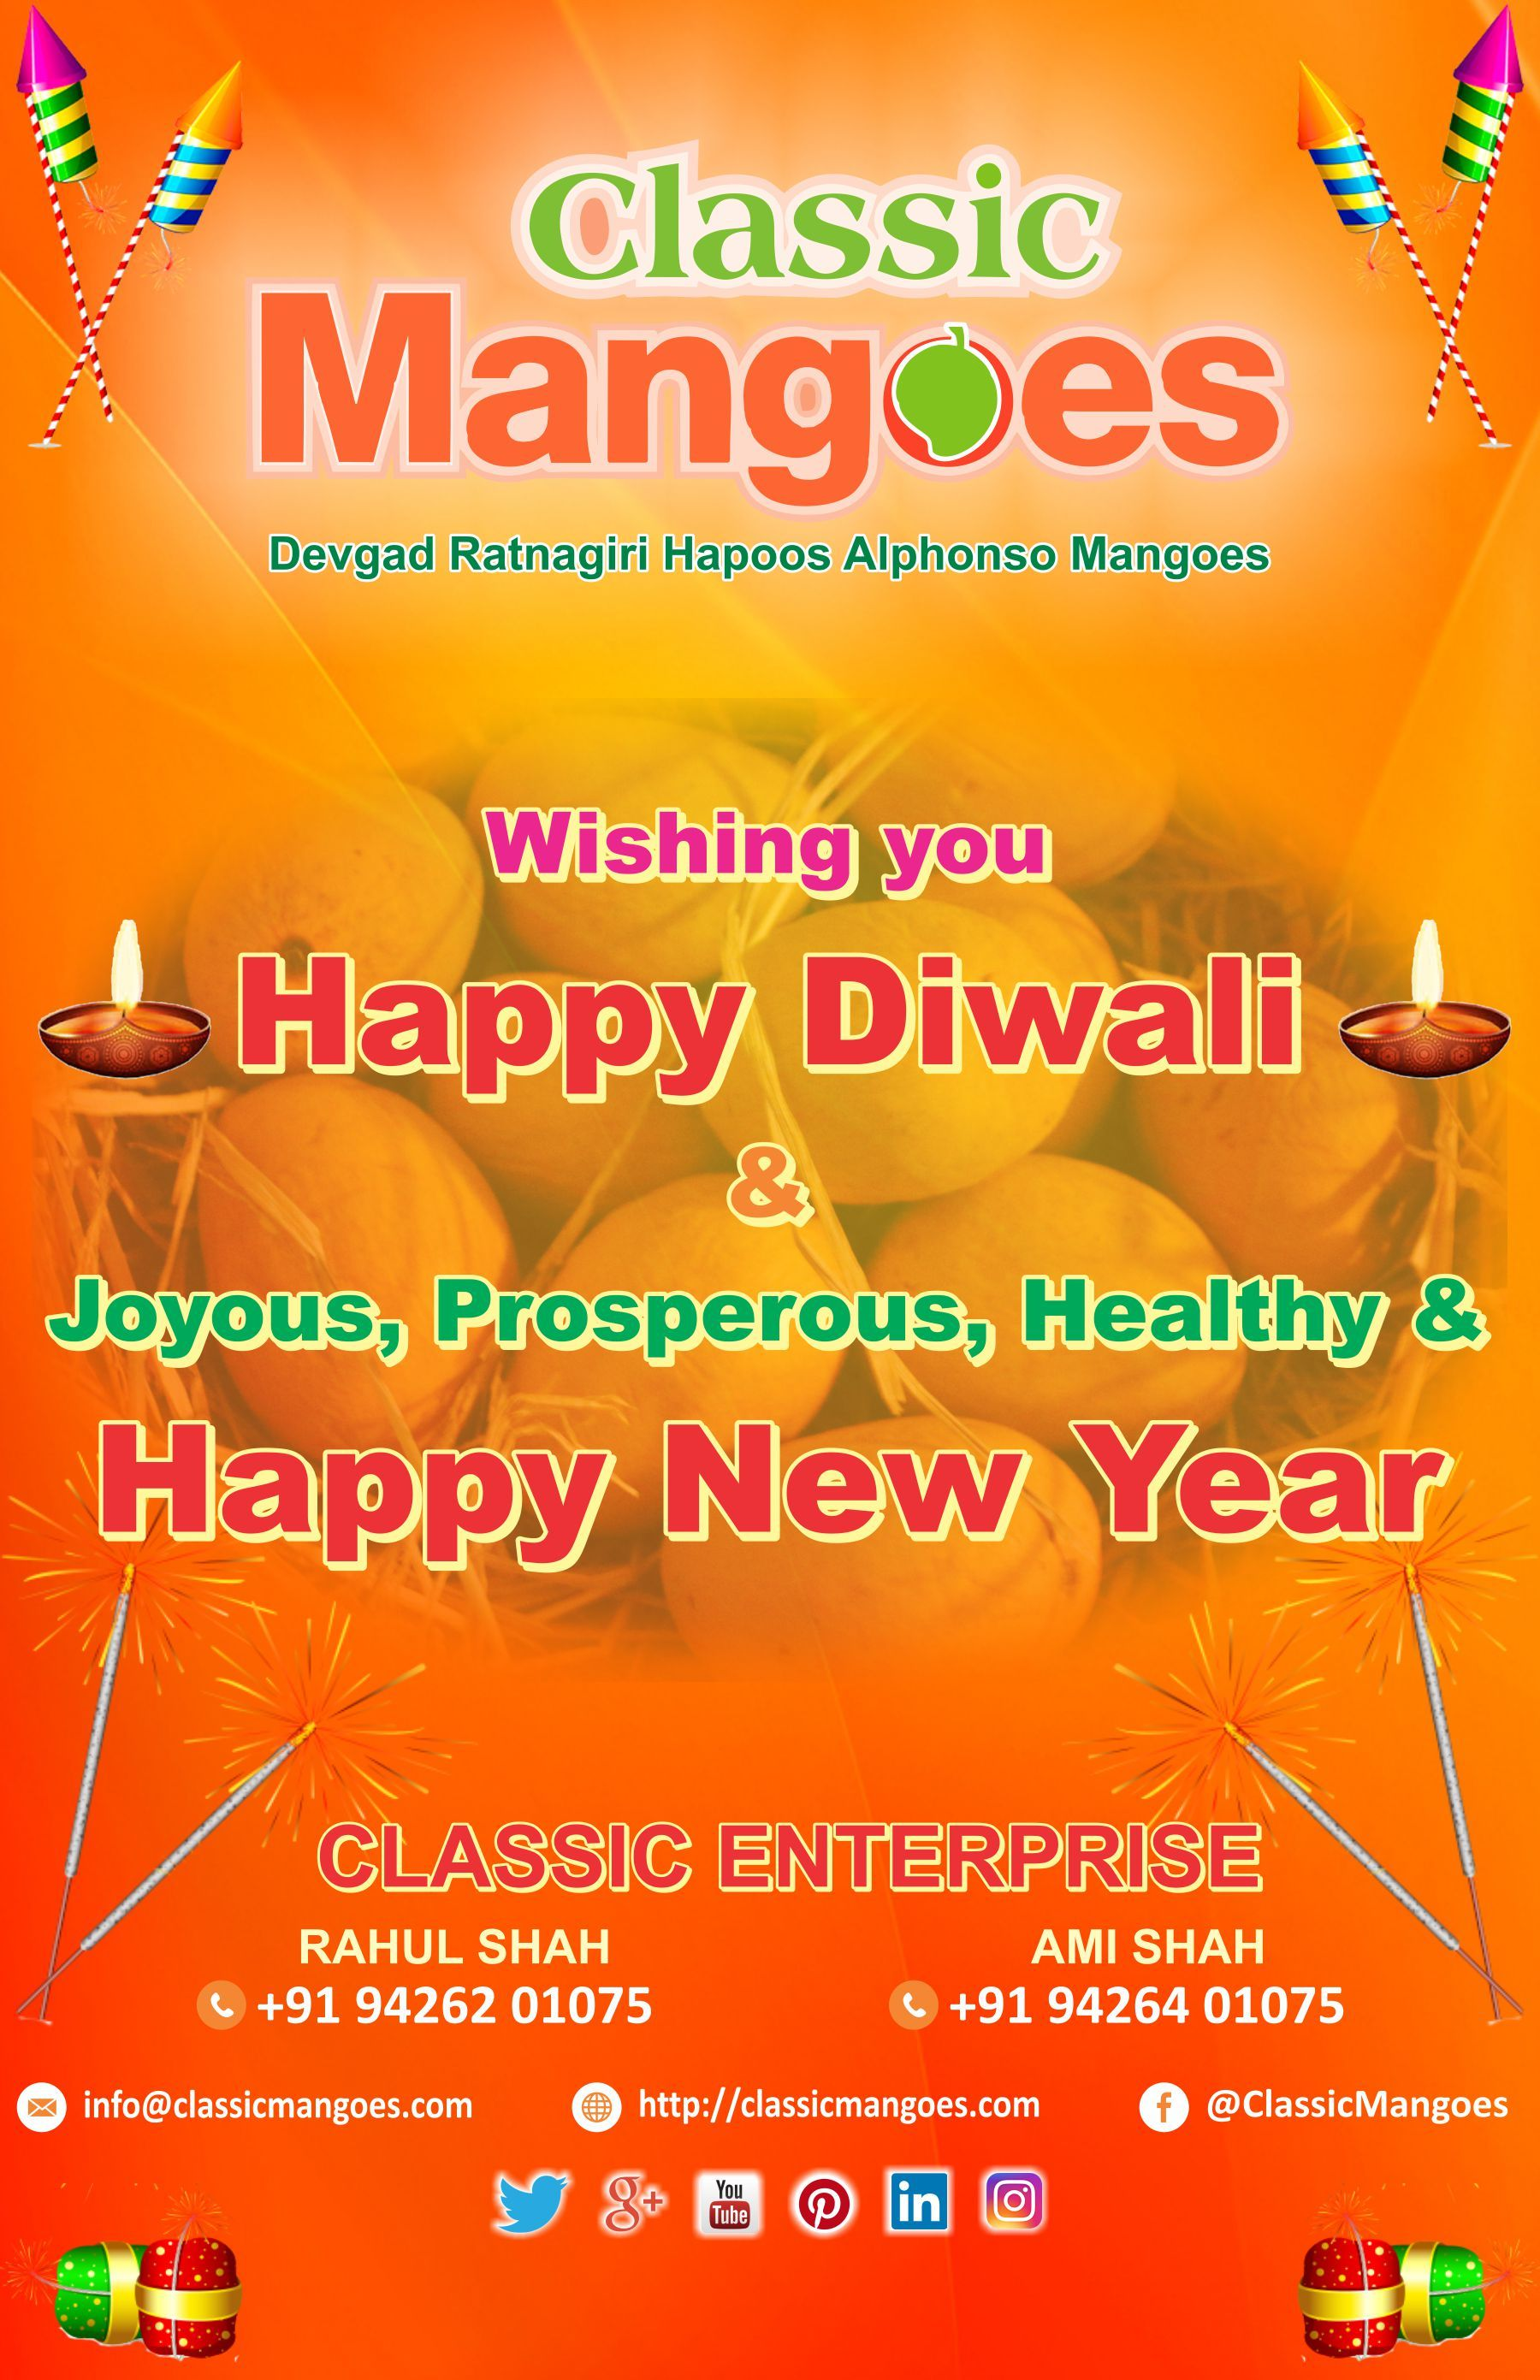 Classicmangoes Wishes All Mangolovers Of Devgad Ratnagiri Hapoos